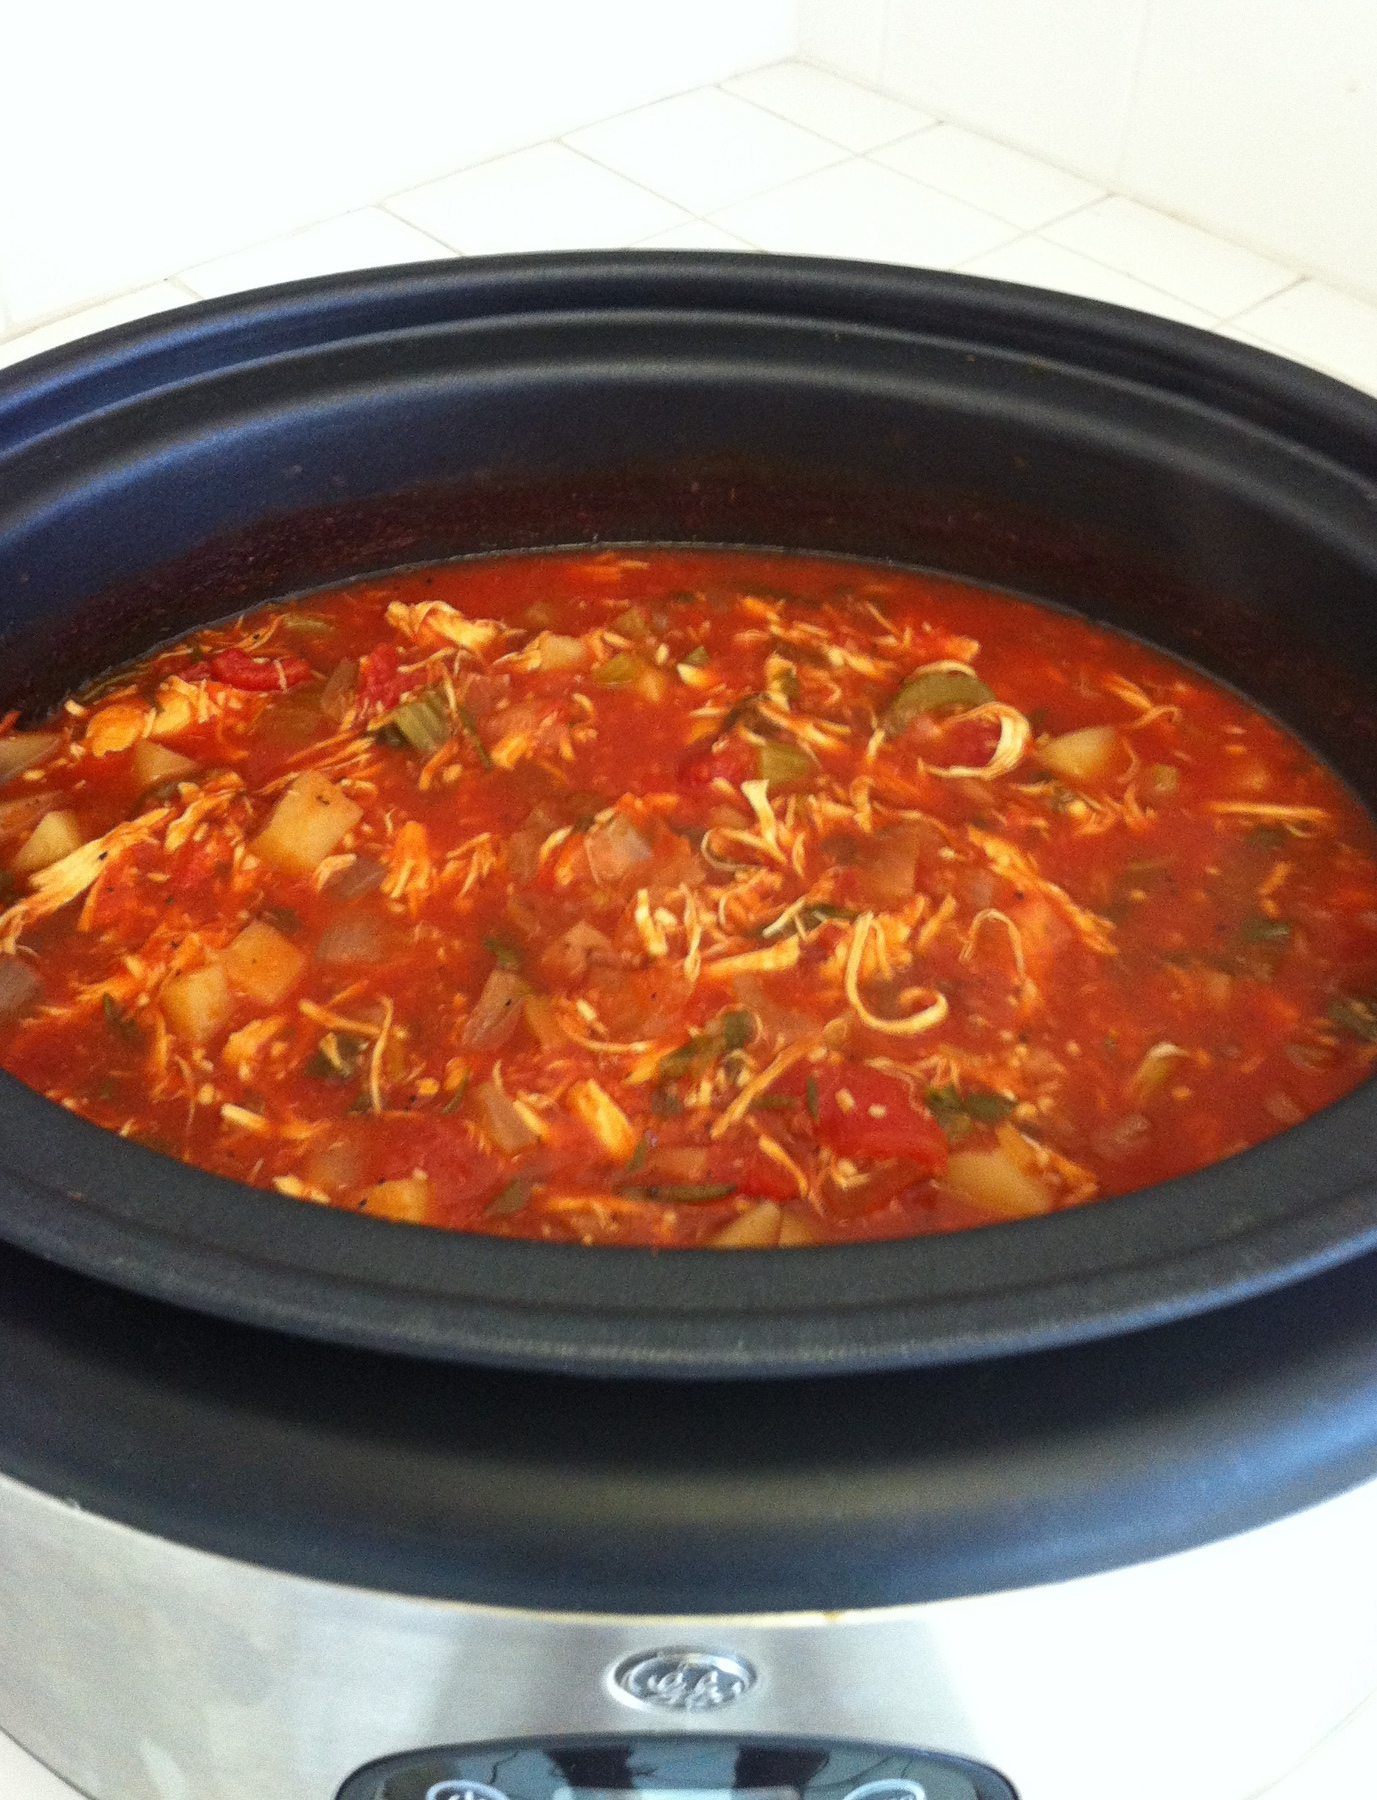 ... Stews and Chili Slow Cooker Soups Chicken Cacciatore Soup (Crock pot